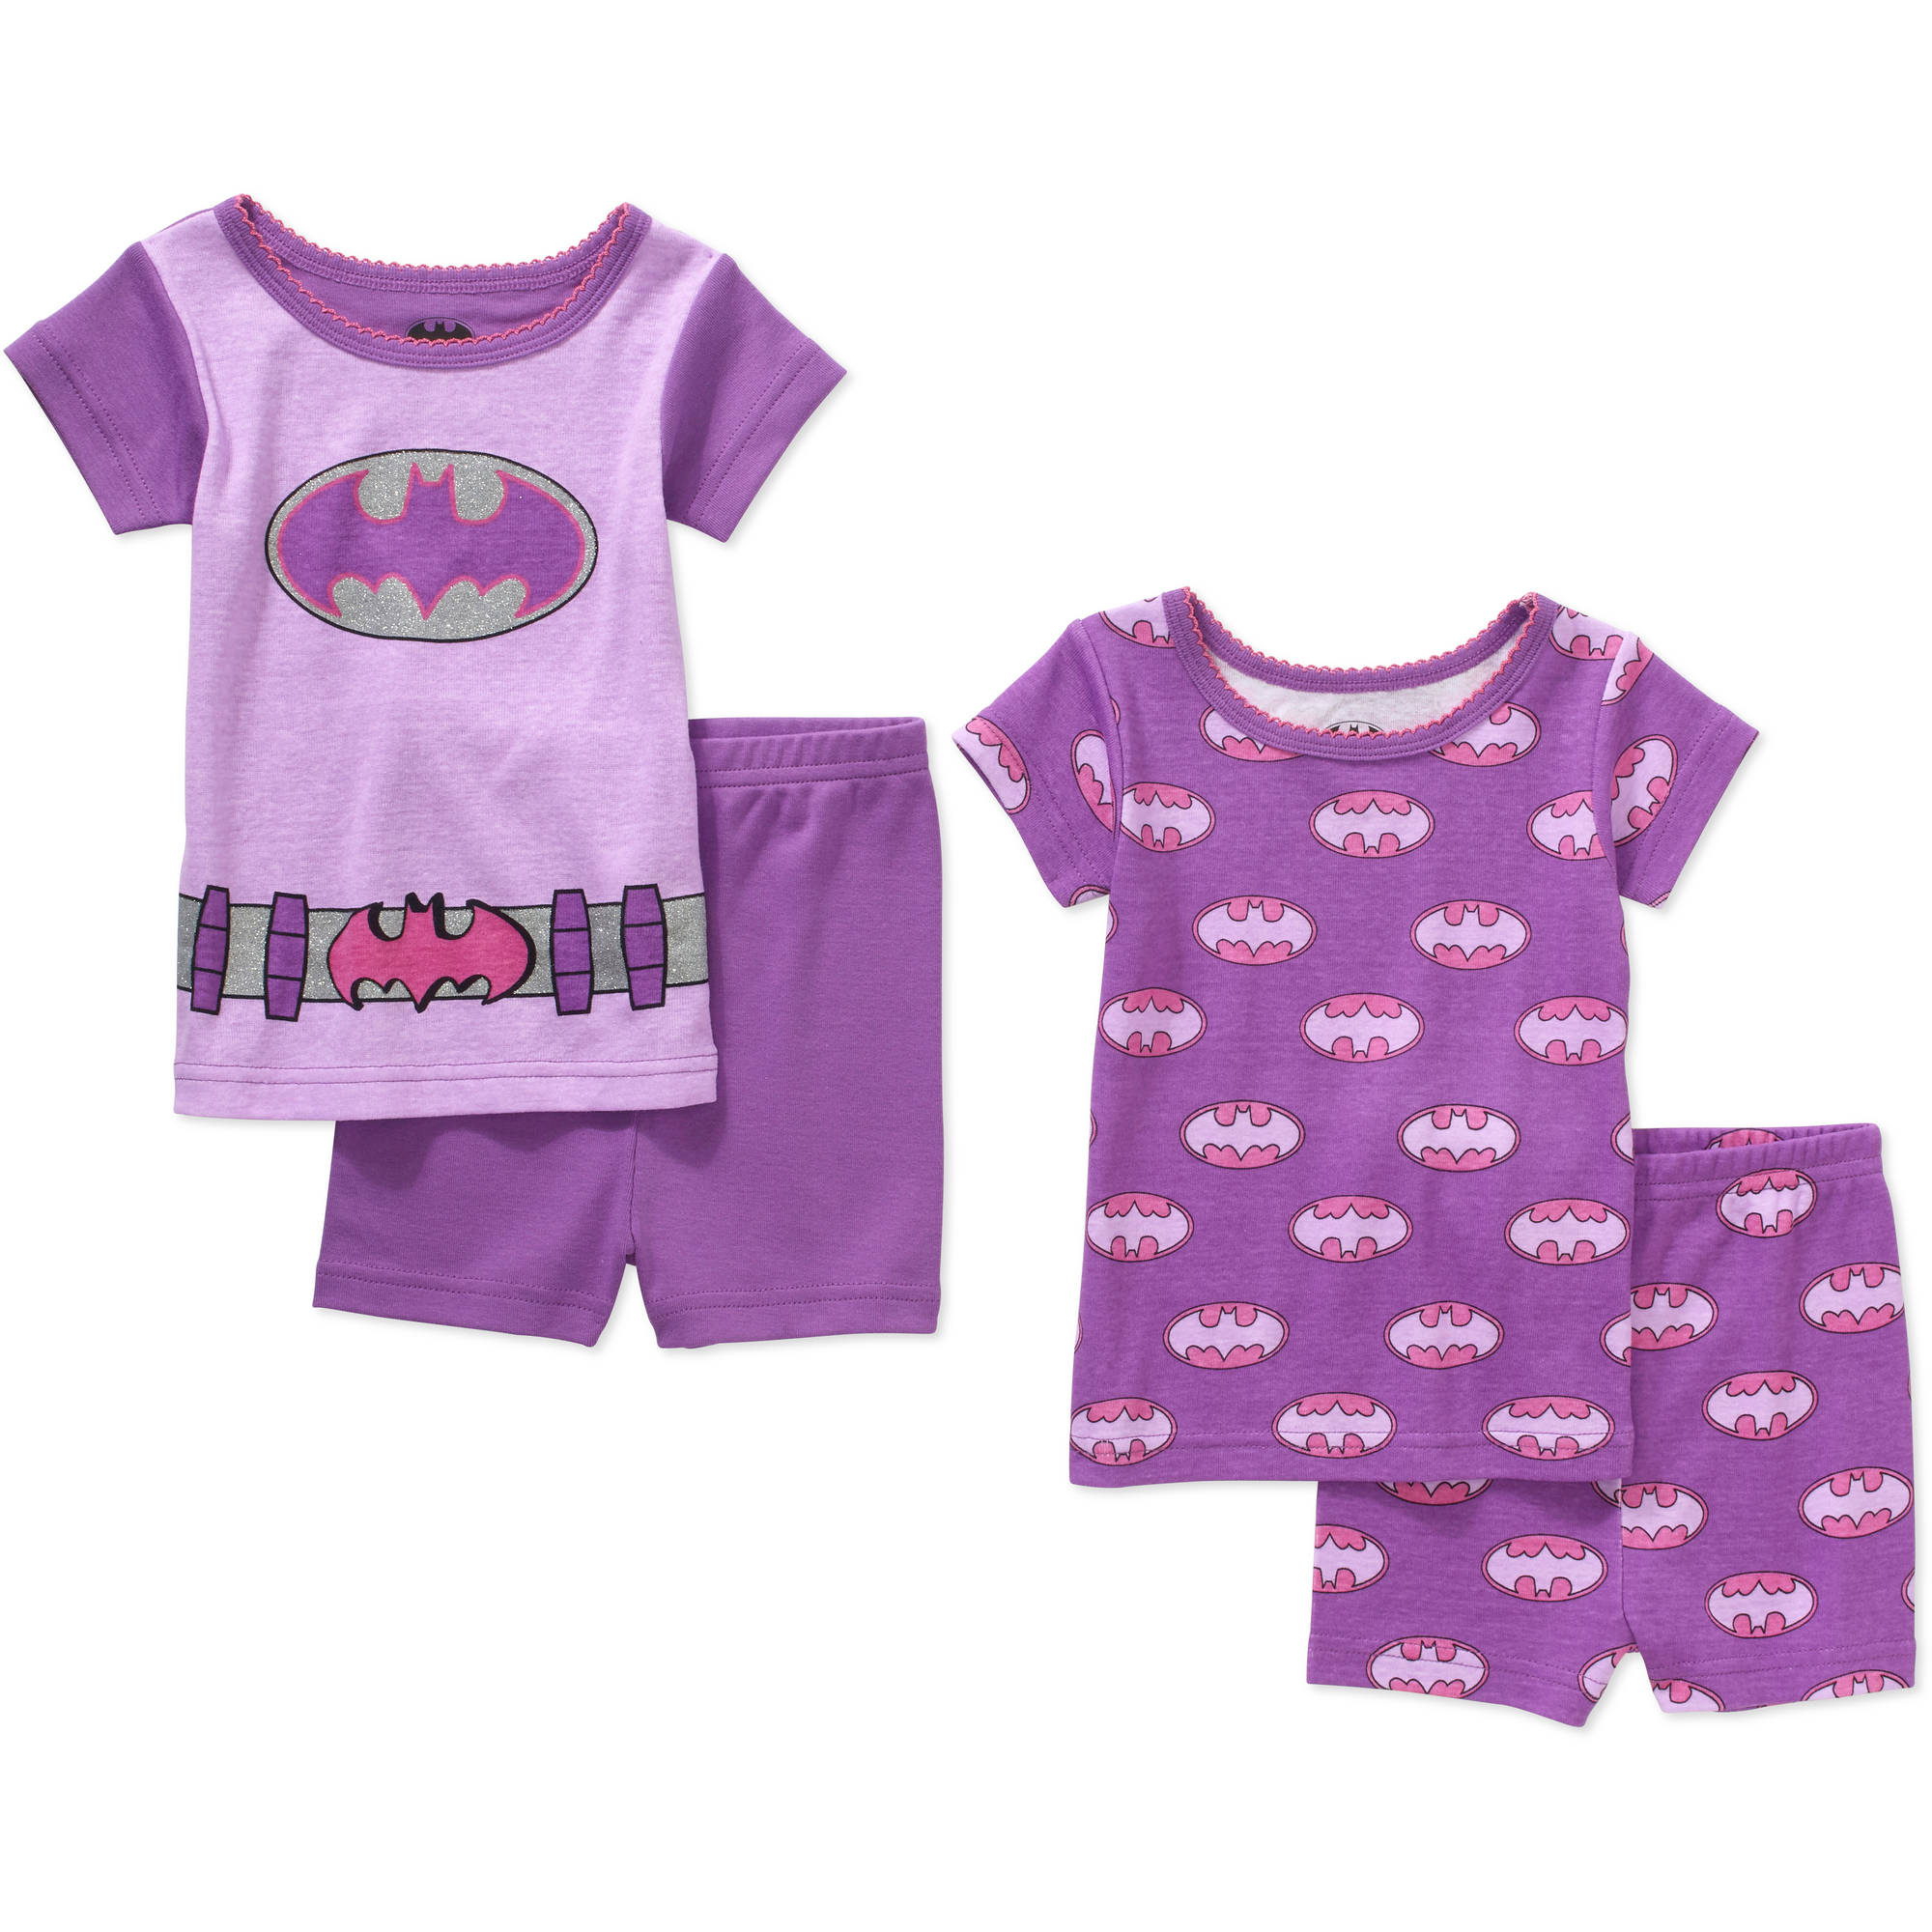 Batgirl Infant Baby Girl' Mix n' Match Short Sleeve Cotton Tight Fit Pajamas, 4-Pieces